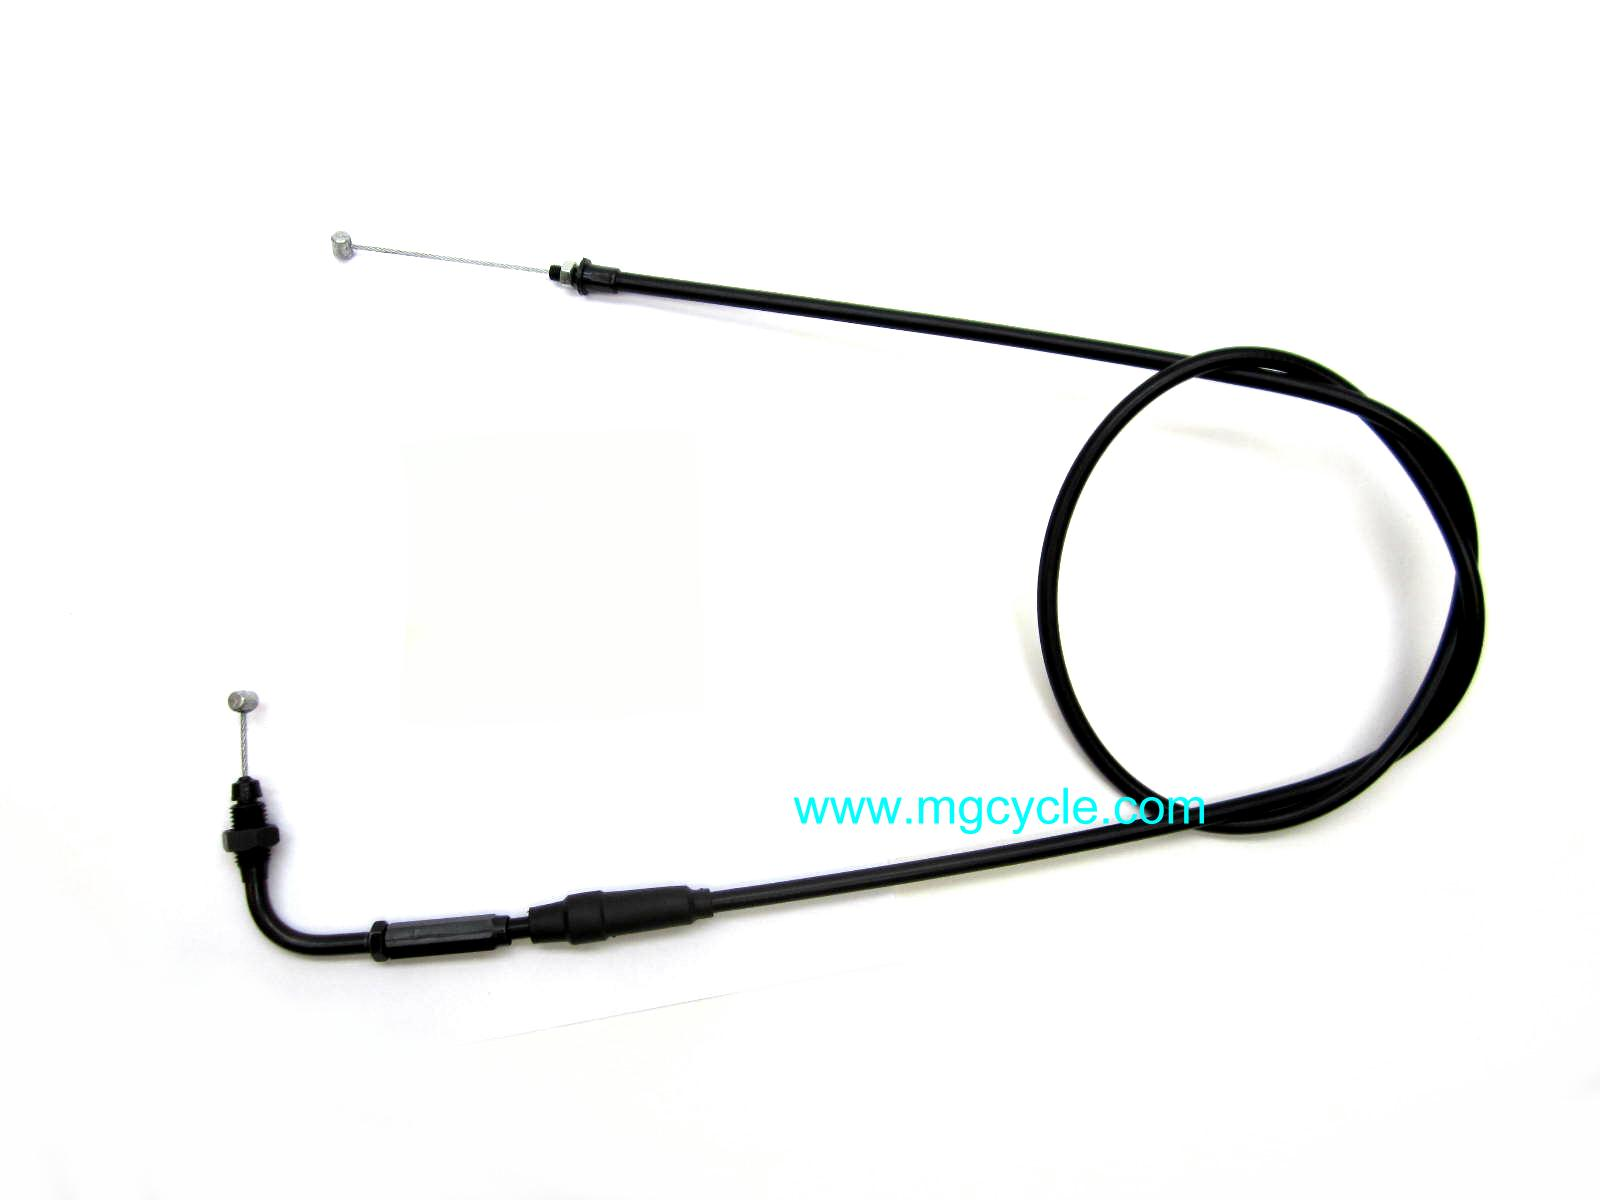 cables : MG Cycle, Moto Guzzi Parts and Accessories